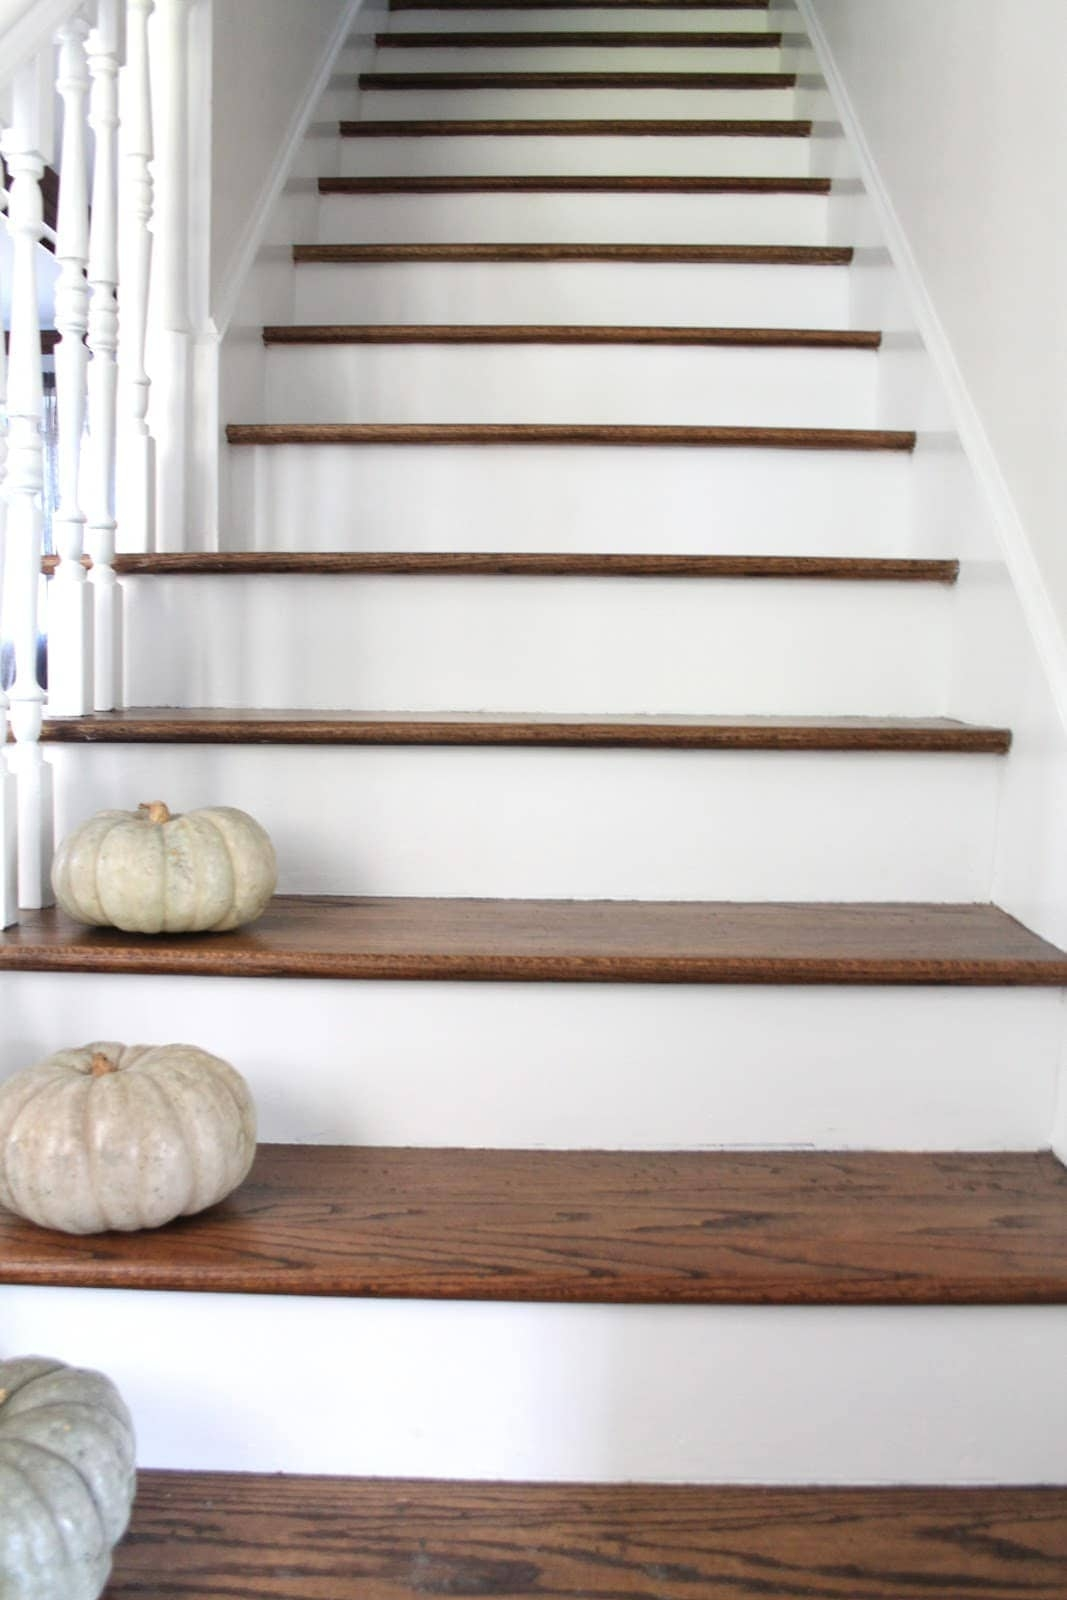 Stair Makeover Treads And Risers Exposed   White And Dark Wood Stairs   Medium Dark   Foyer   Stair Railing   Indoor   Traditional